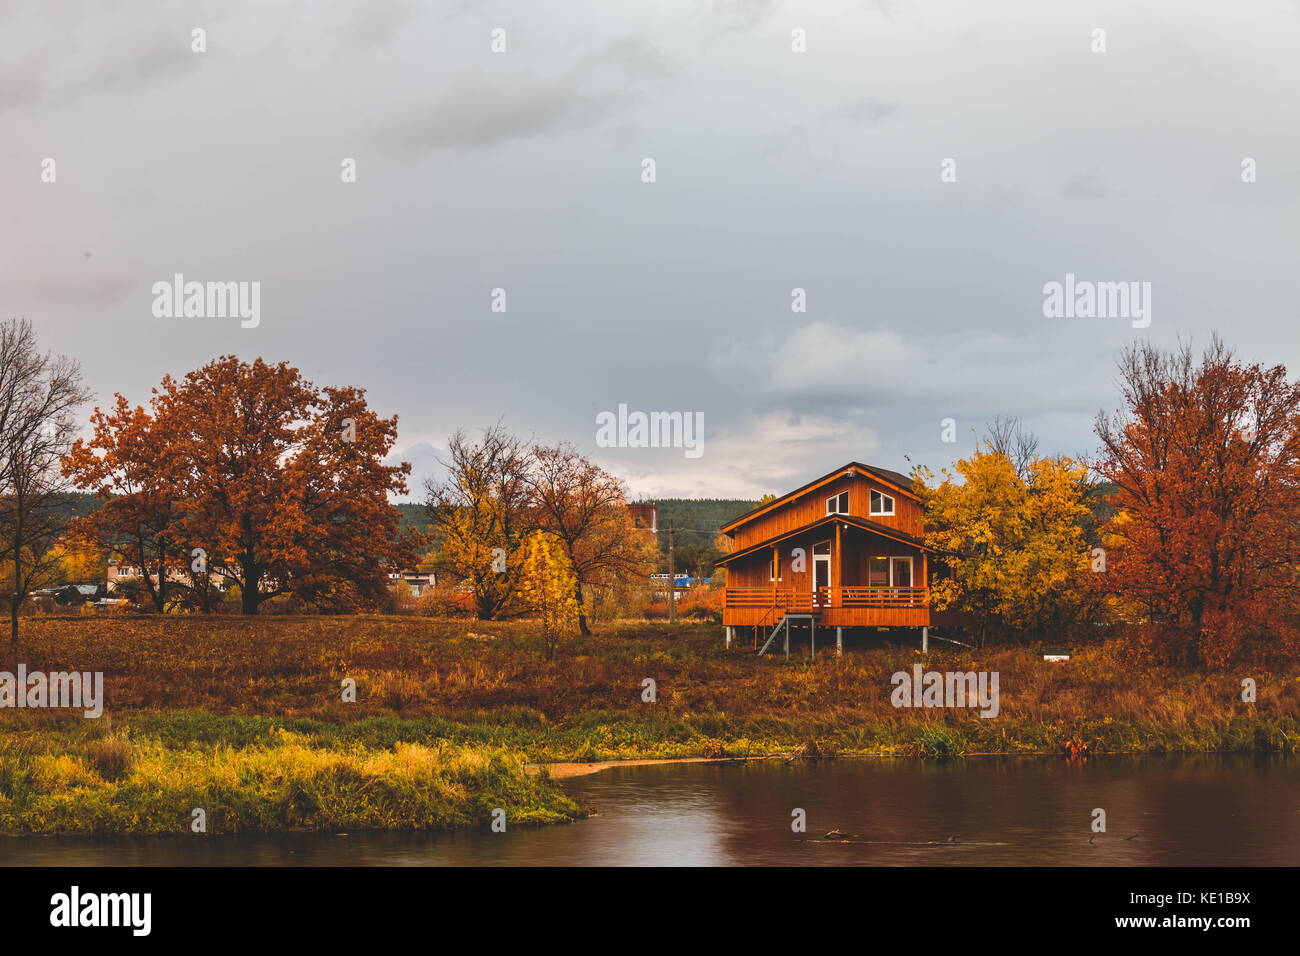 riverside cottages around autumn trees on lake Stock Photo